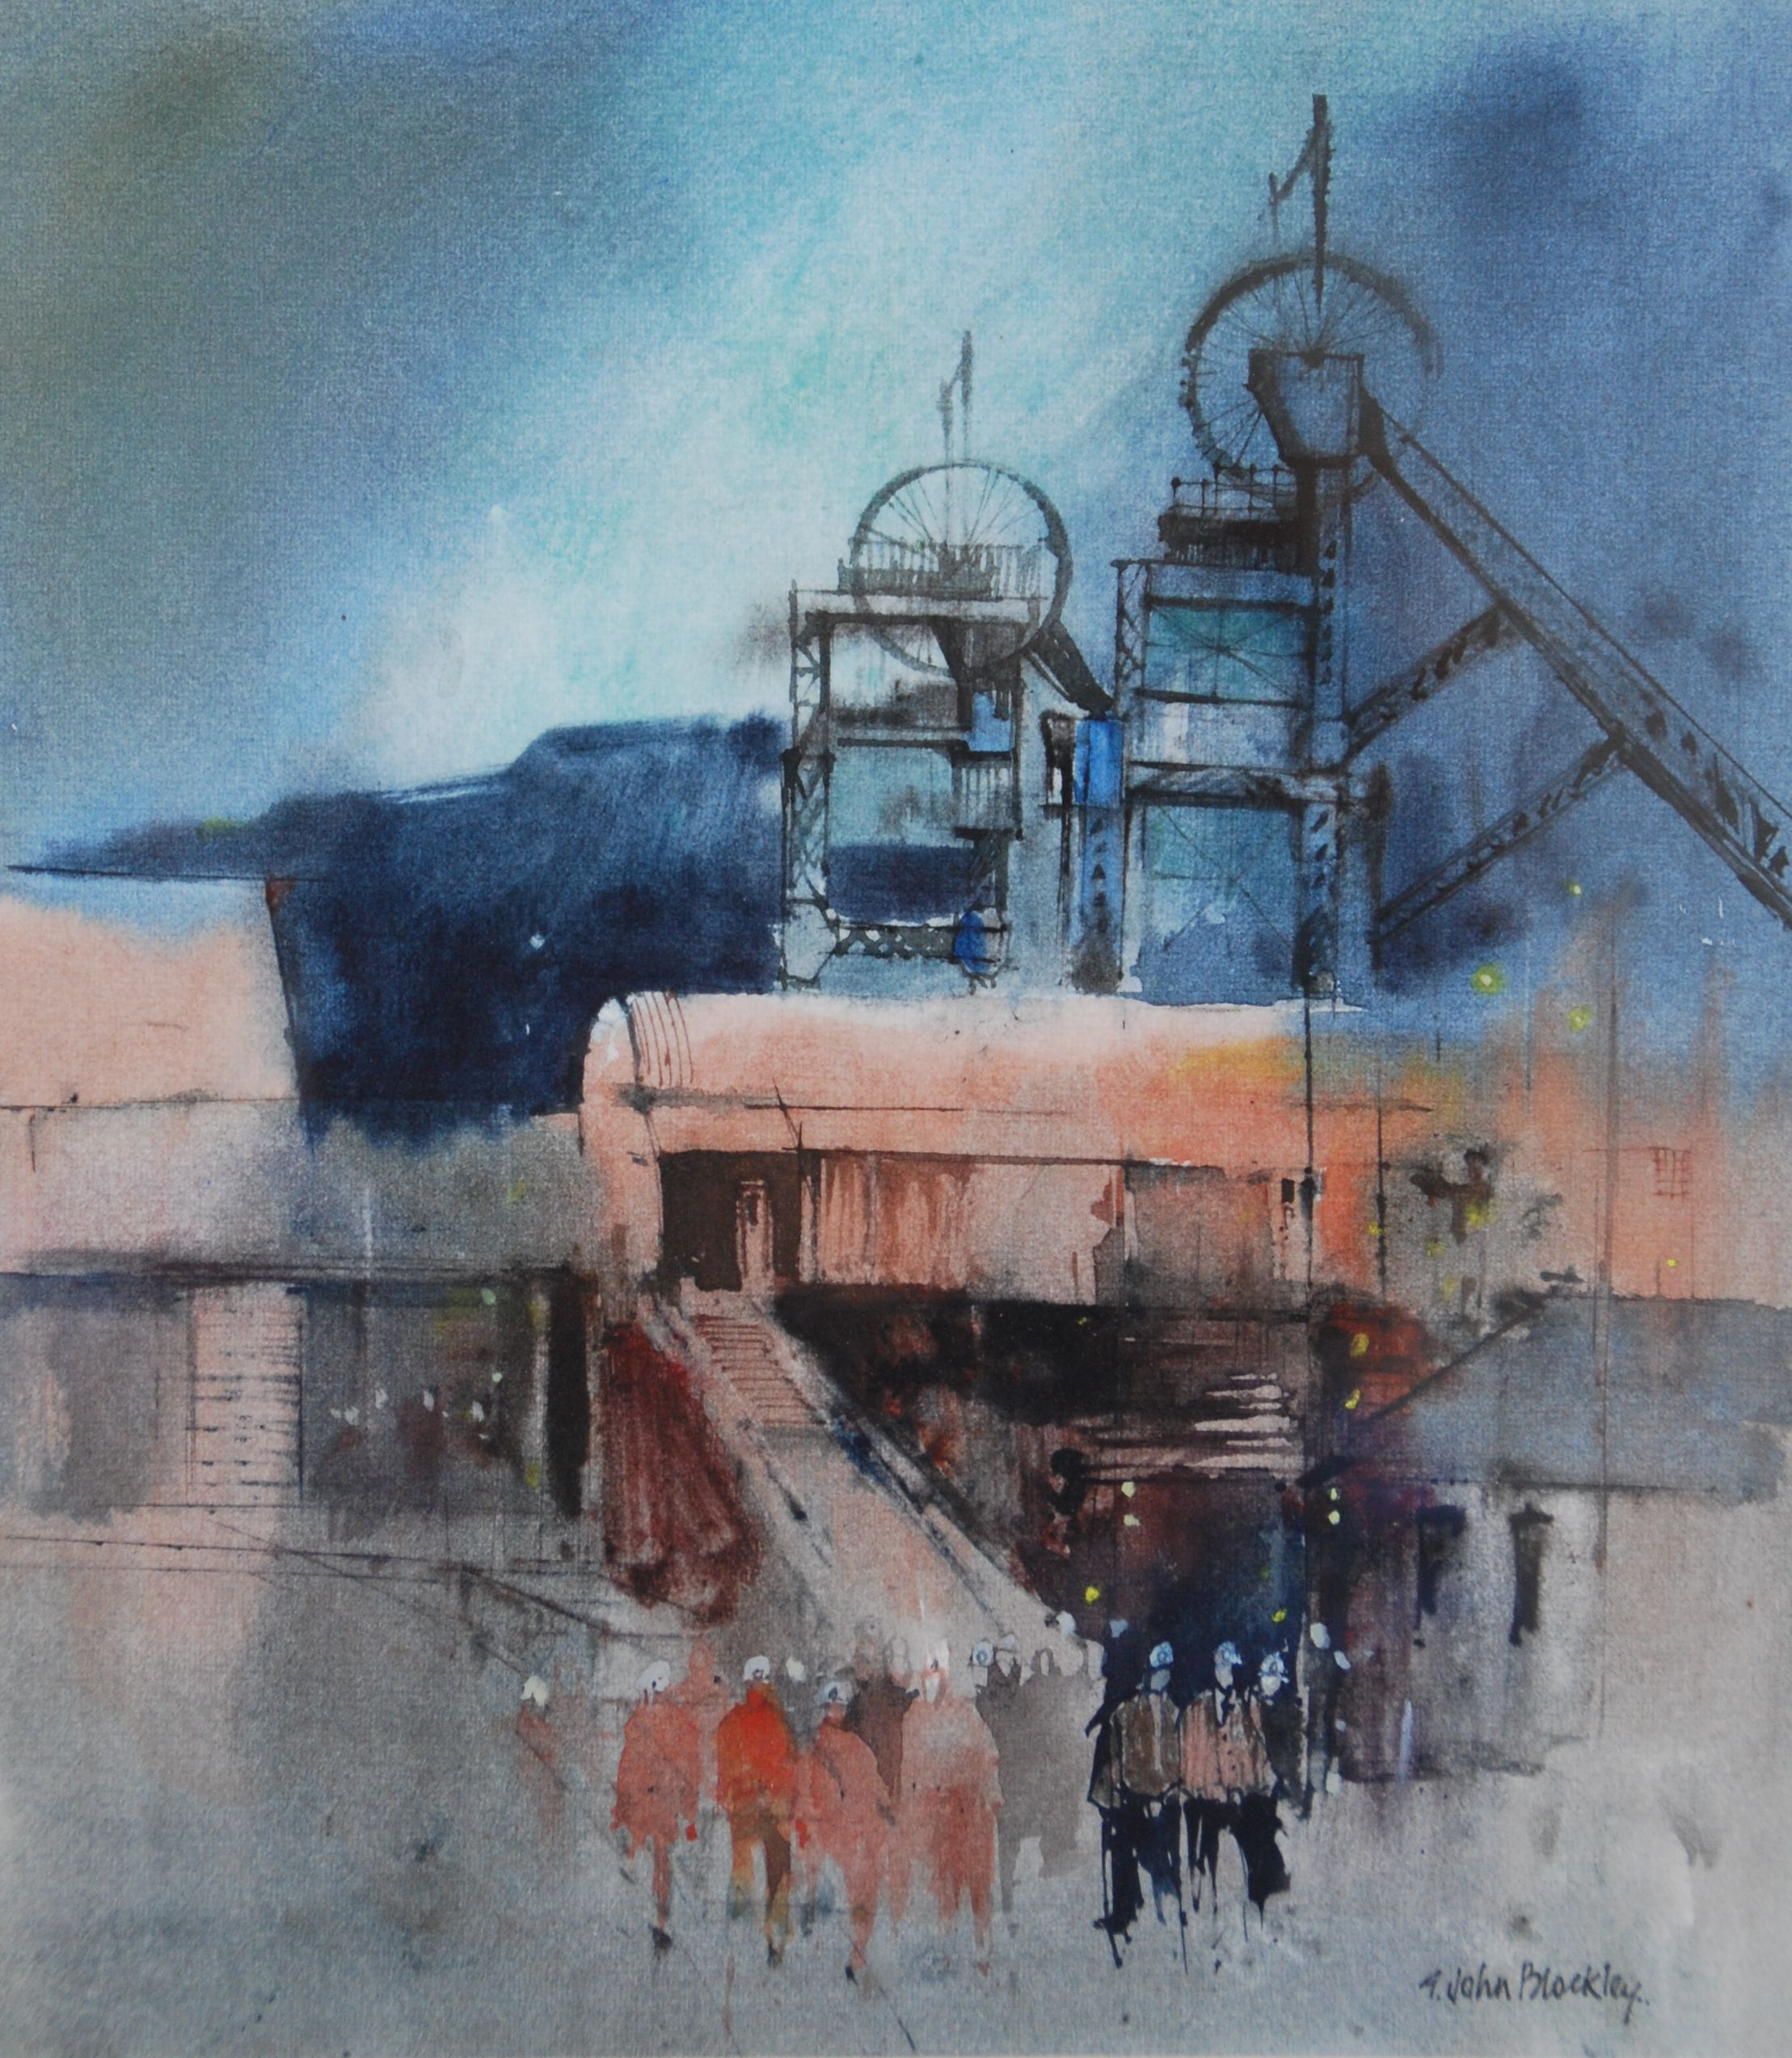 Marine Colliery 1, South Wales G. John Blockley Watercolour, c1987